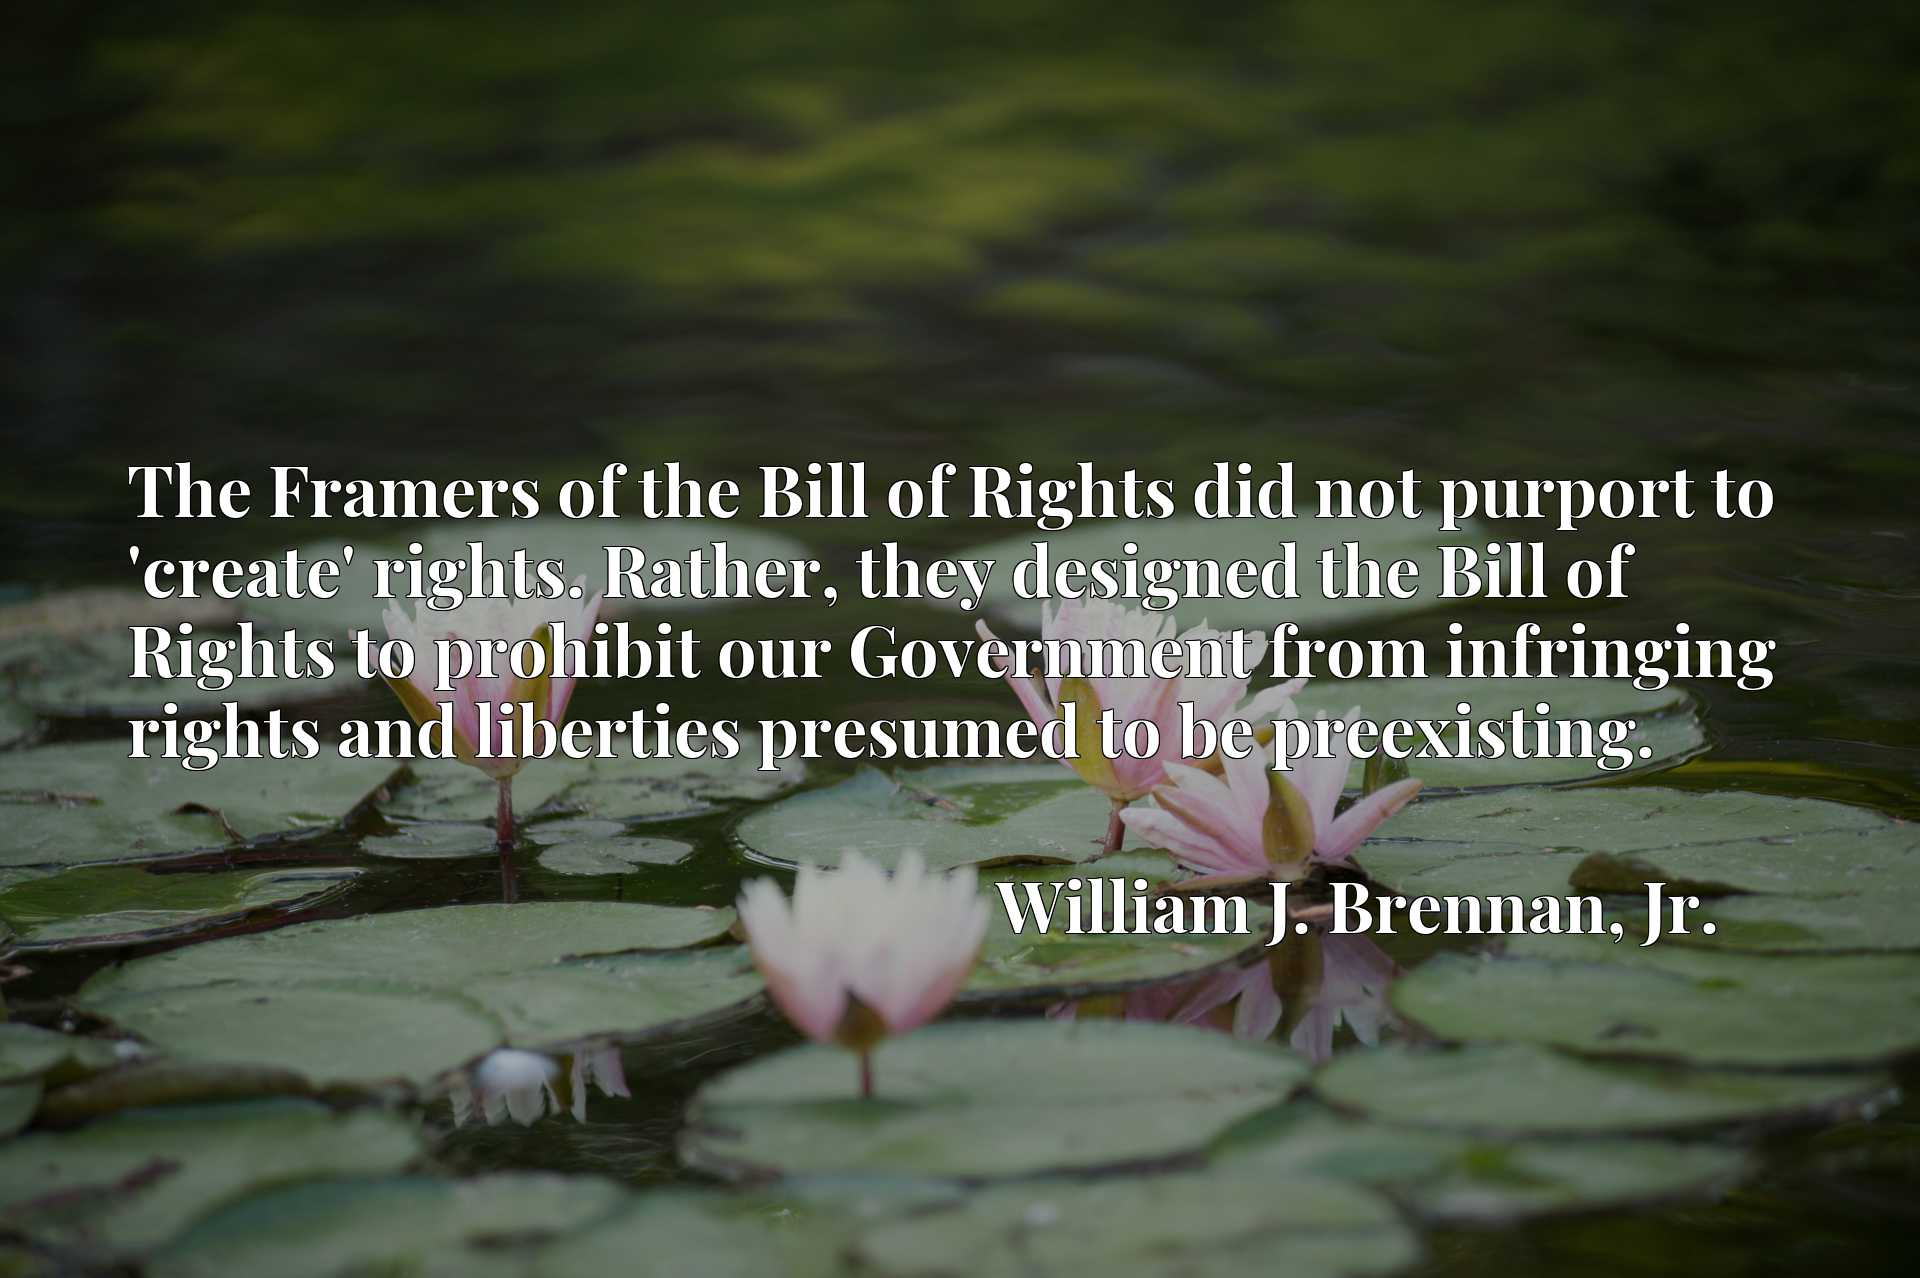 The Framers of the Bill of Rights did not purport to 'create' rights. Rather, they designed the Bill of Rights to prohibit our Government from infringing rights and liberties presumed to be preexisting.